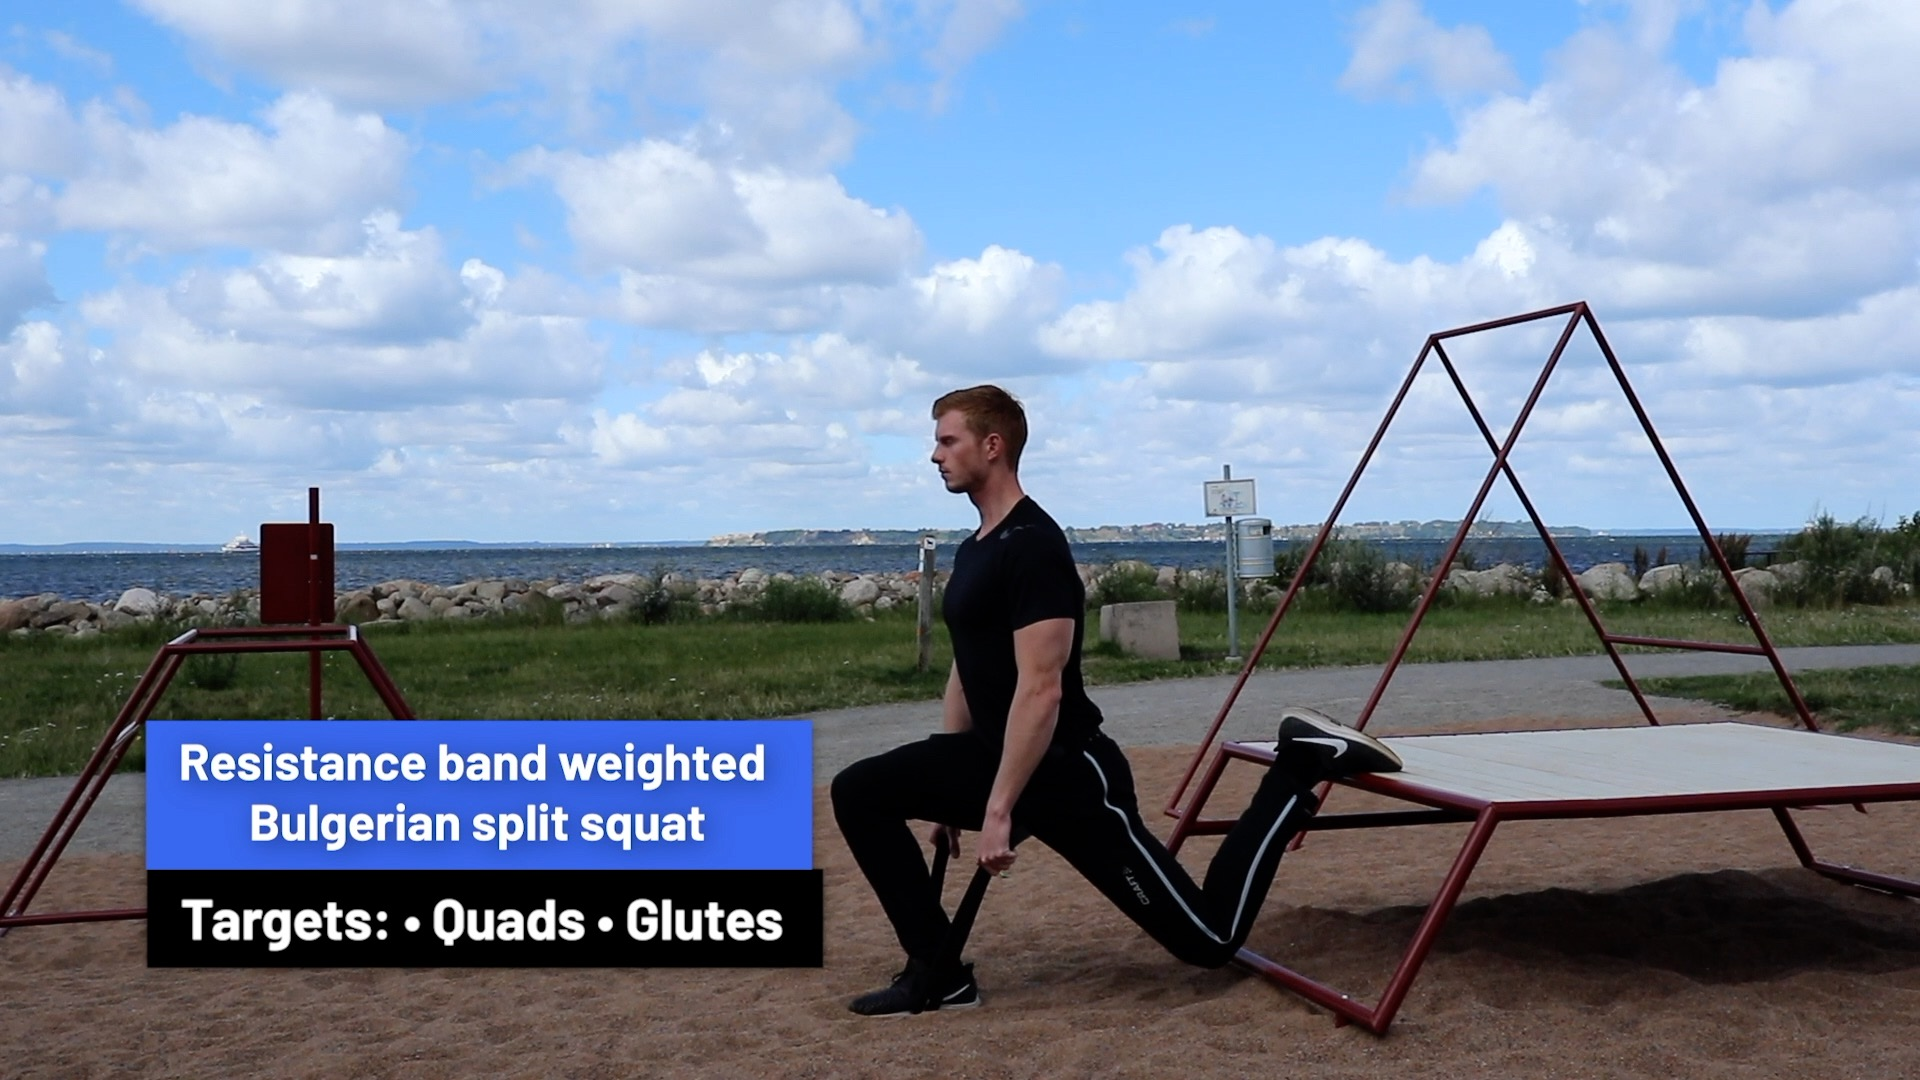 Resistance band weighted Bulgarian split squat